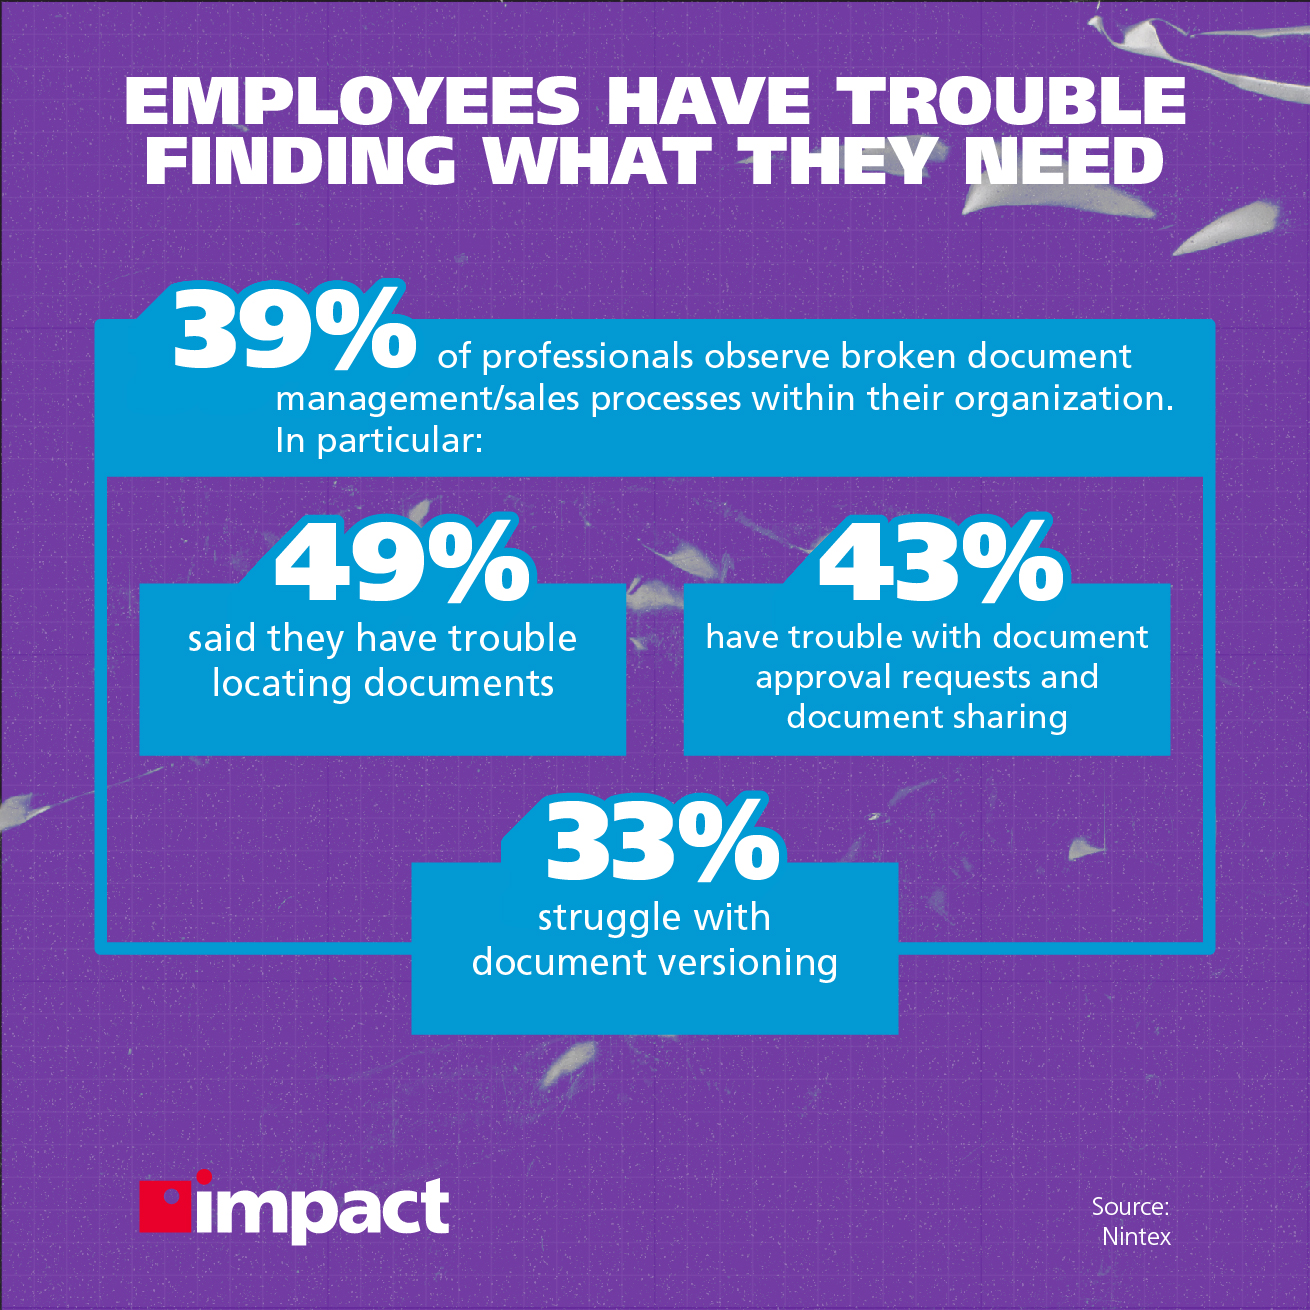 Printing costs productivity-employees have trouble finding what they need